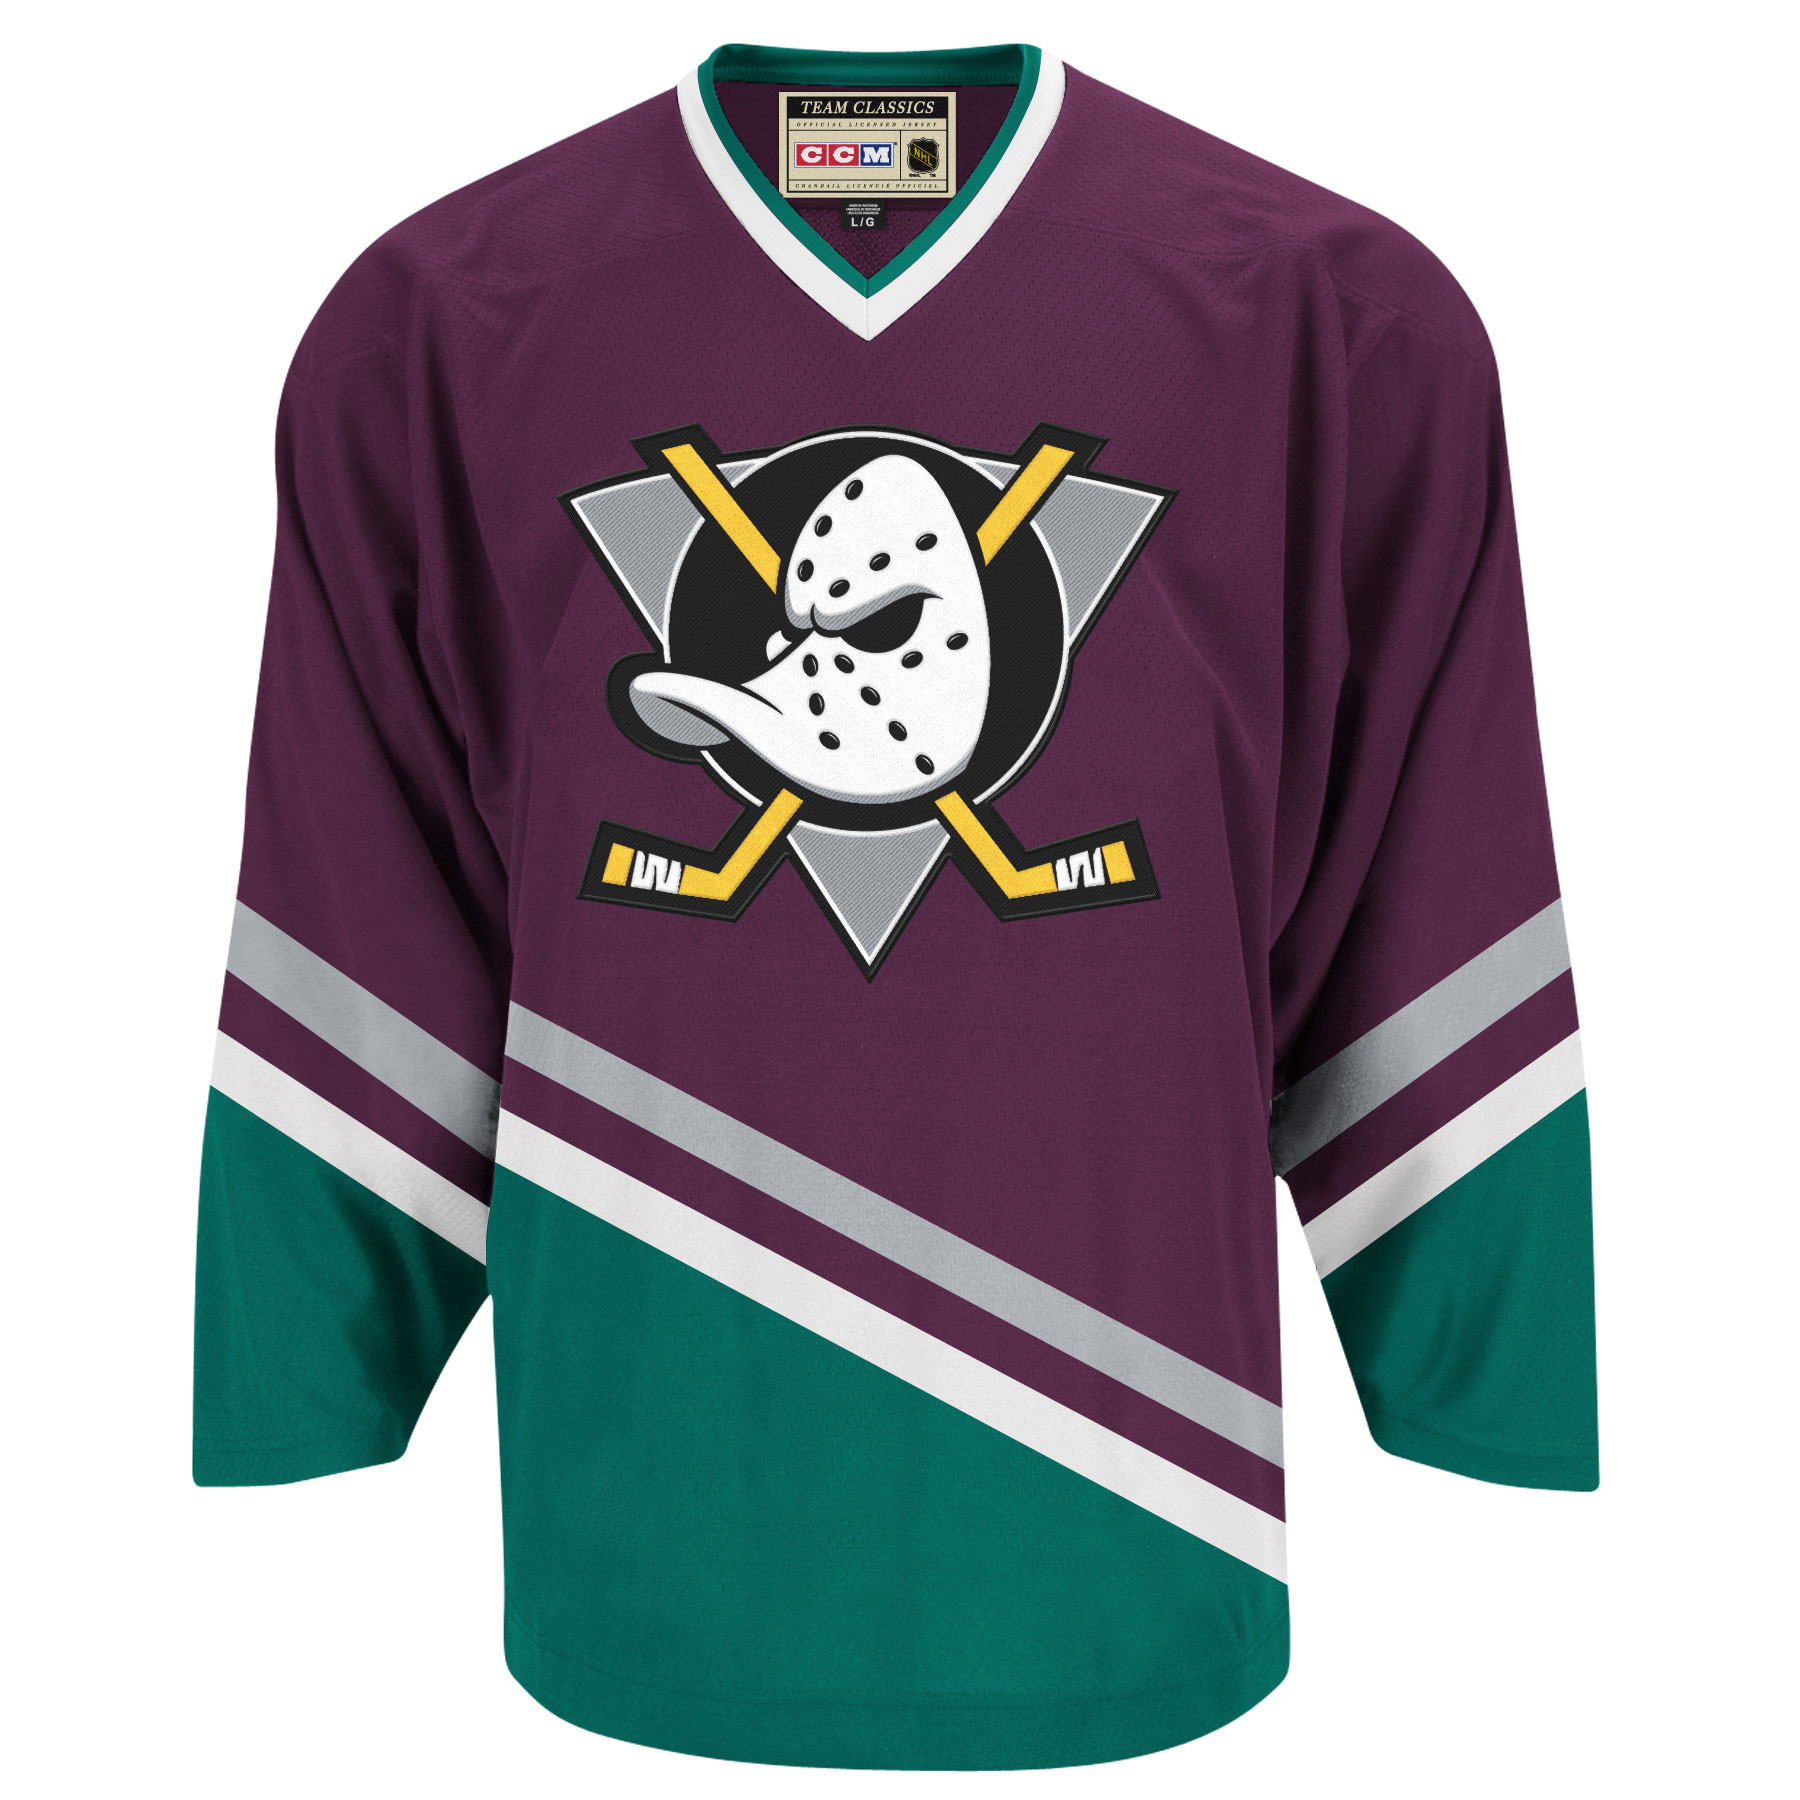 ... pattern that the original Mighty Ducks jersey had 6cc71121c1e6